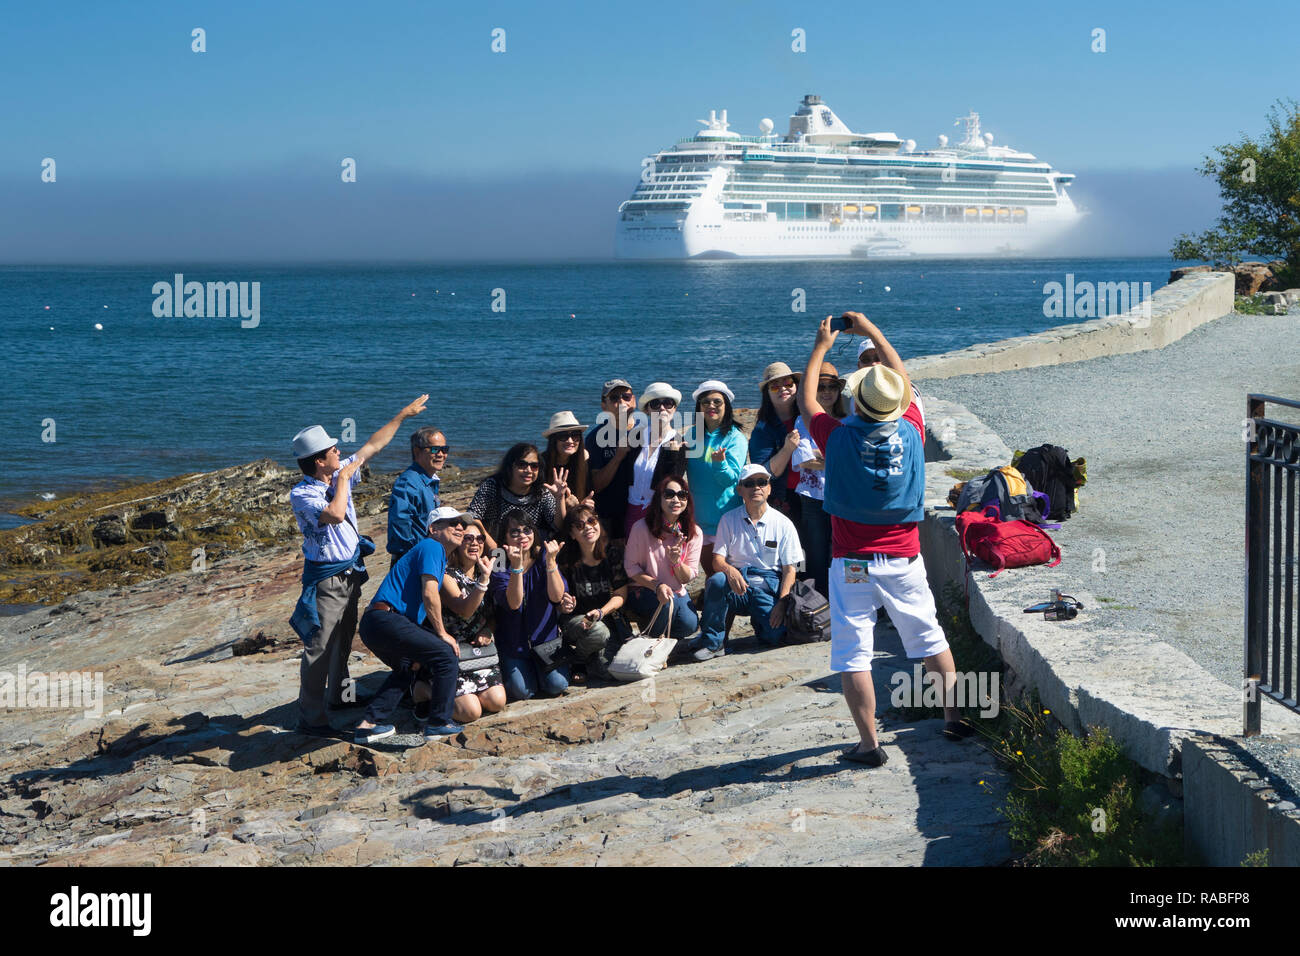 https://c7.alamy.com/comp/RABFP8/asian-tourists-taking-a-group-picture-with-a-cruise-ship-in-the-background-bar-harbor-maine-usa-RABFP8.jpg